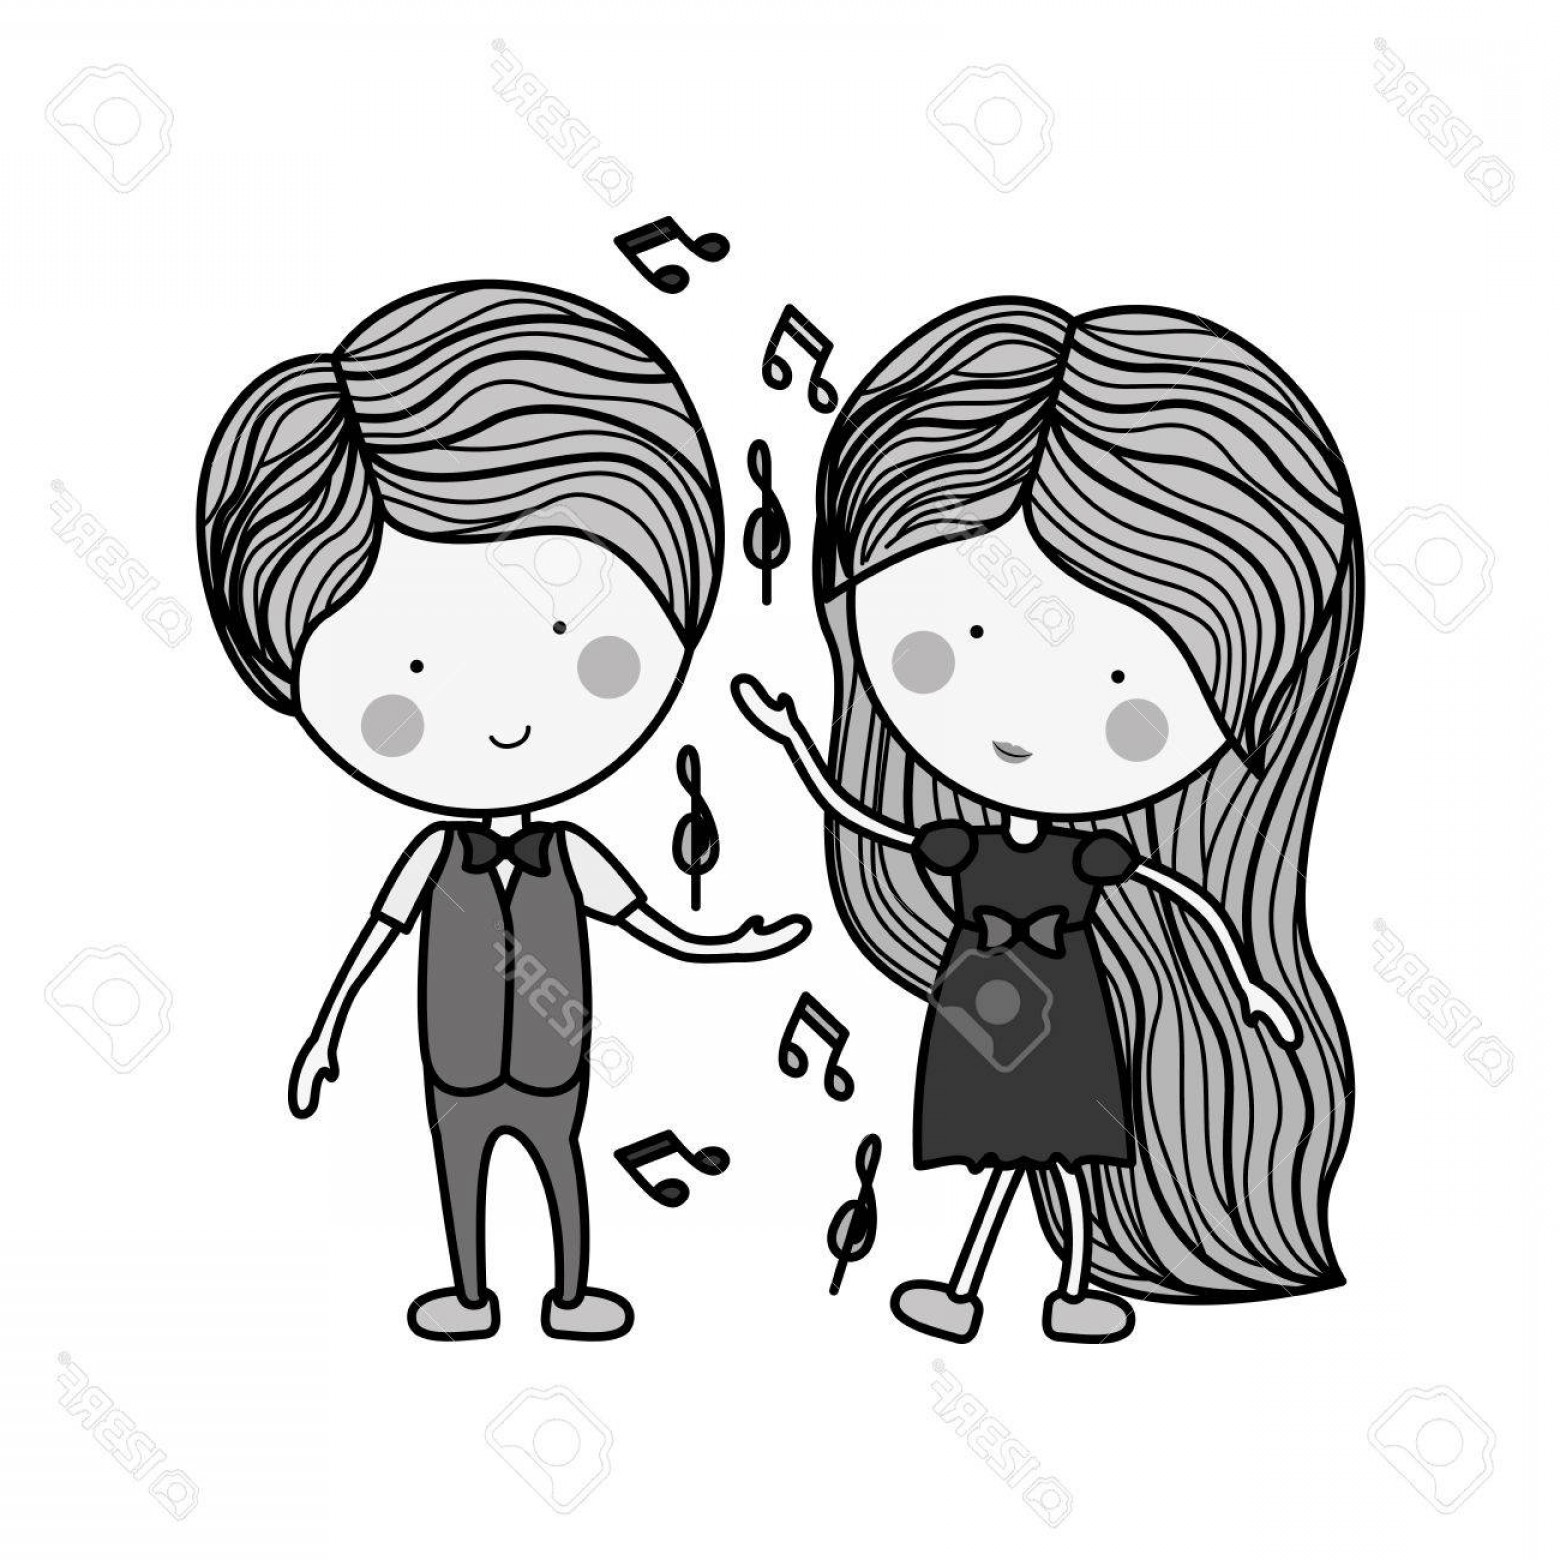 Dancing Musical Notes Vector: Photostock Vector Silhouette Couple Dancing With Musical Notes Illustration